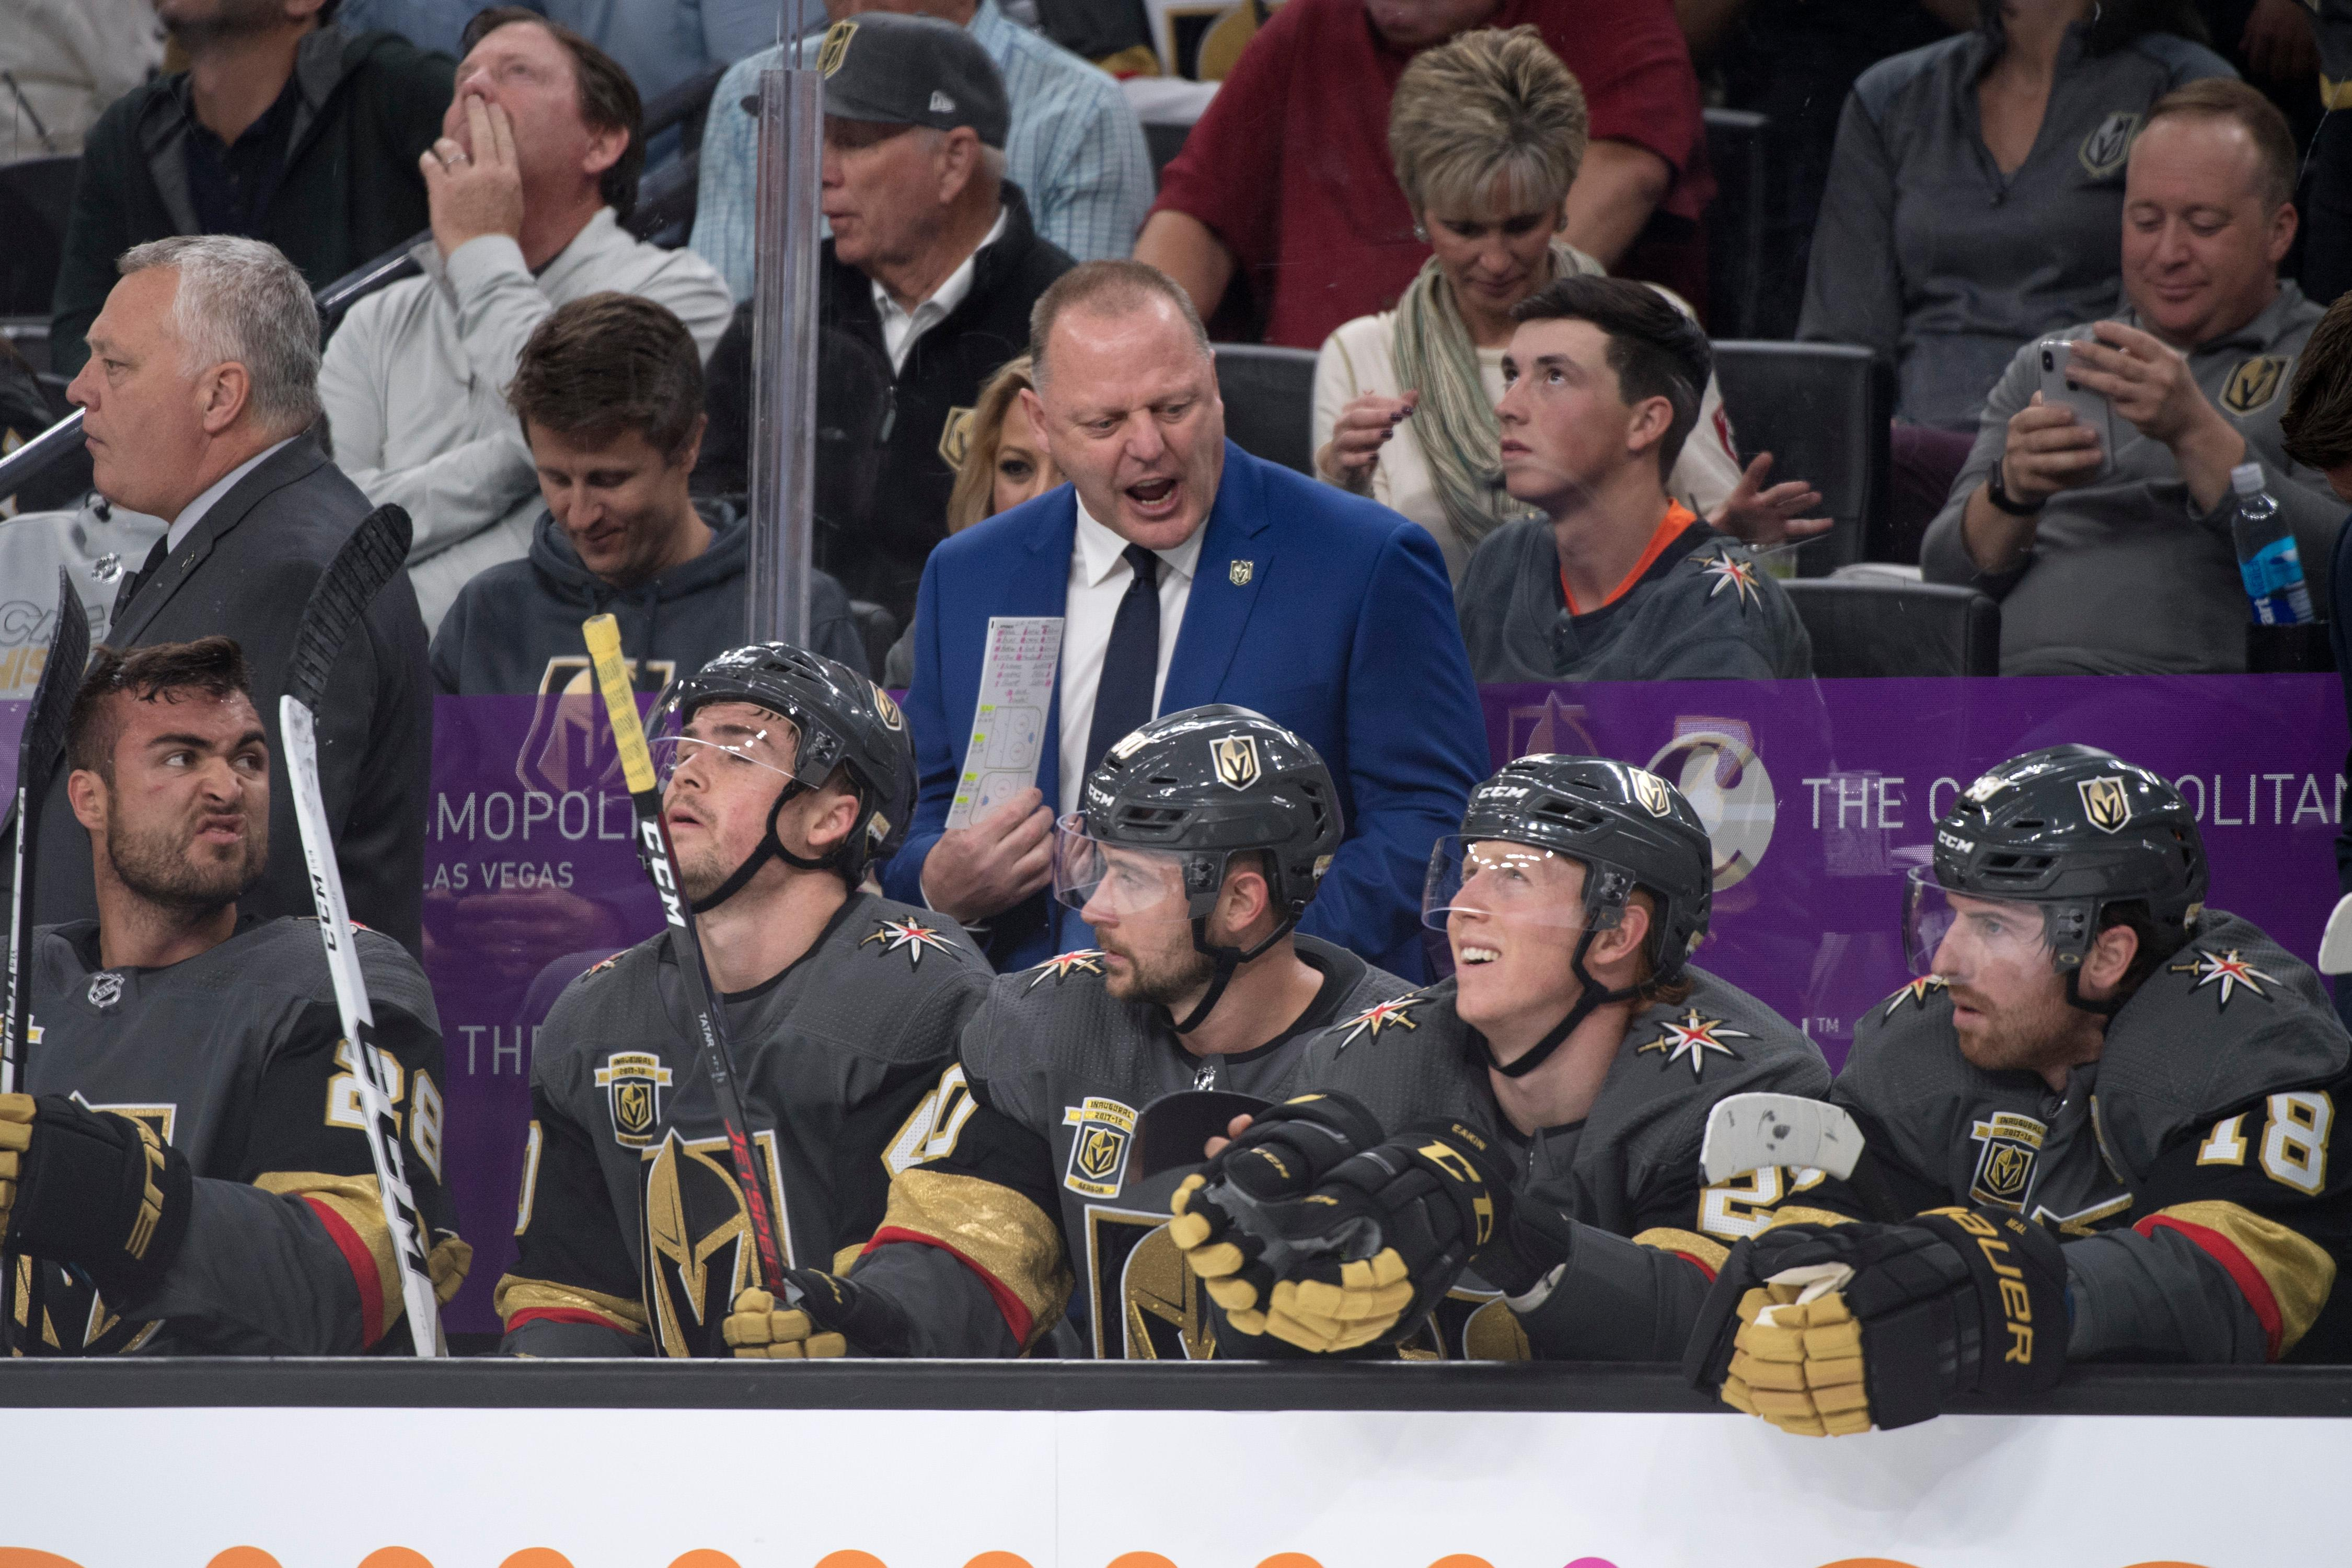 Vegas Golden Knights head coach Gerard Gallant talks to his players during the first period of Game 1 of their NHL hockey first-round playoff series against the Los Angeles Kings Wednesday, April 11, 2018 at T-Mobile Arena. The Knights won 1-0. CREDIT: Sam Morris/Las Vegas News Bureau